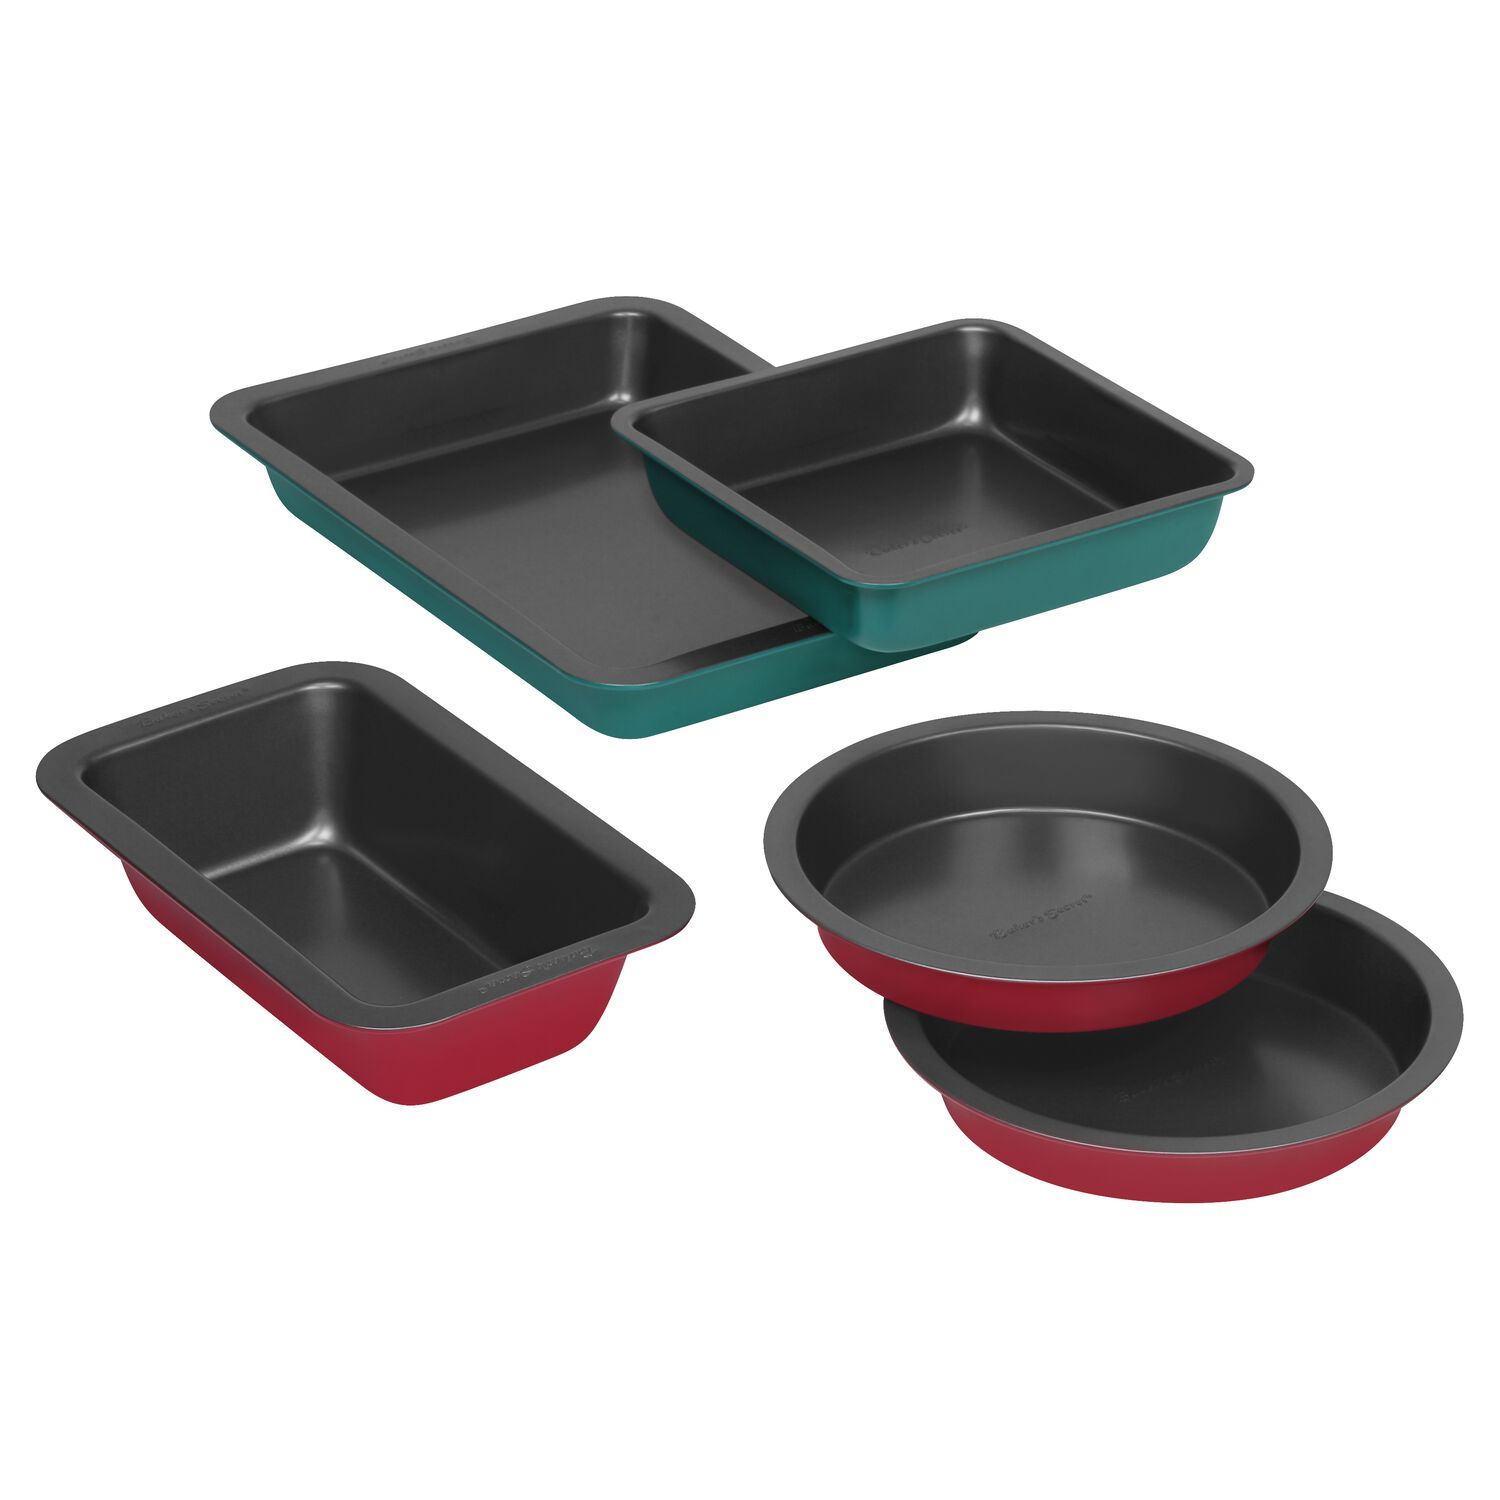 Baker's Secret 5-Pc Colored Bakeware Set